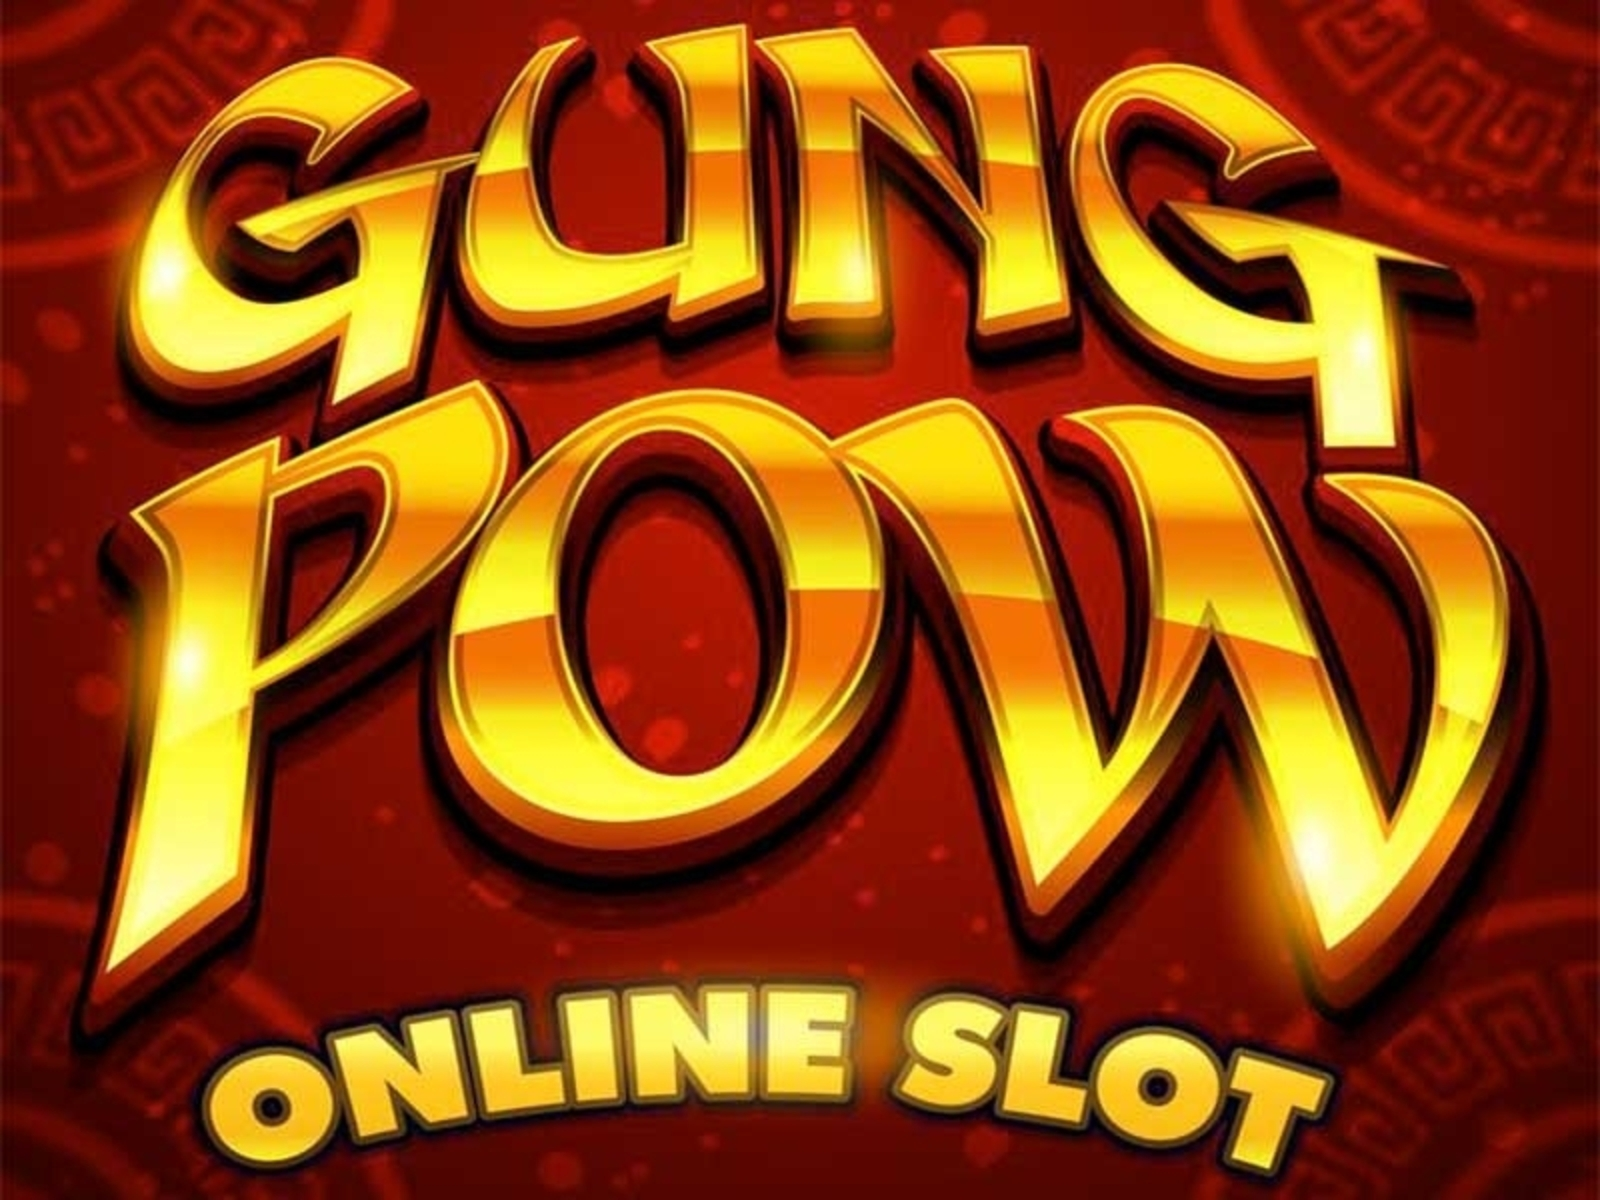 The Gung Pow Online Slot Demo Game by Microgaming